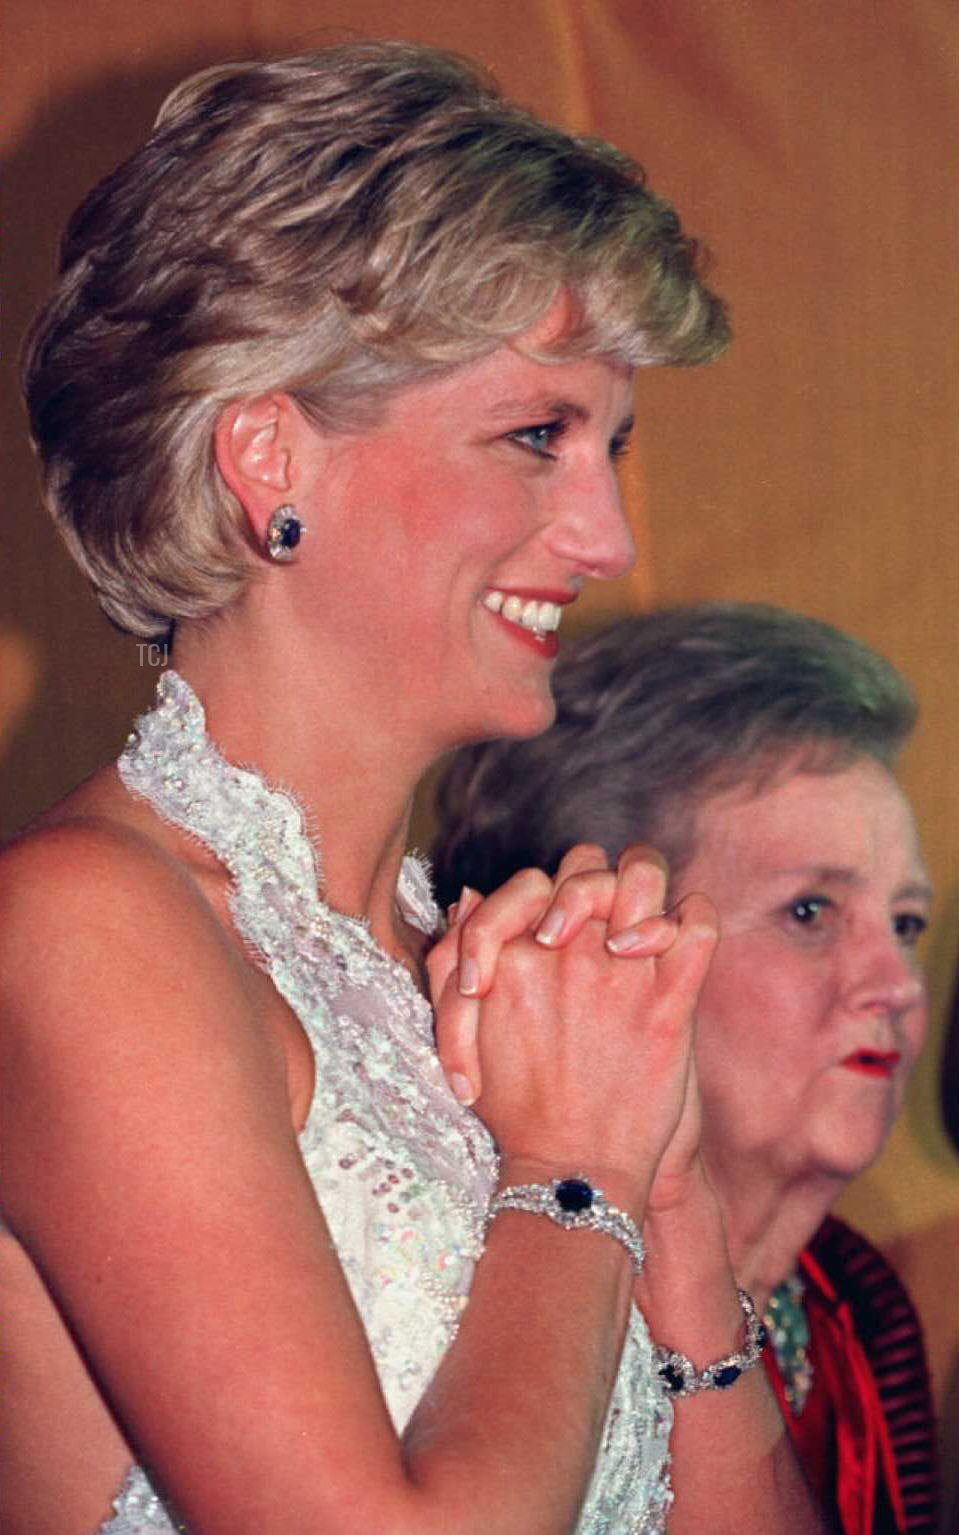 Princess Diana of Wales stands with Washington Post owner Katharine Graham in the receiving line at a multi-million dollar fundraising event for the Nina Hyde Center for Breast Cancer Research late 24 September 1996 in Washington, D.C.